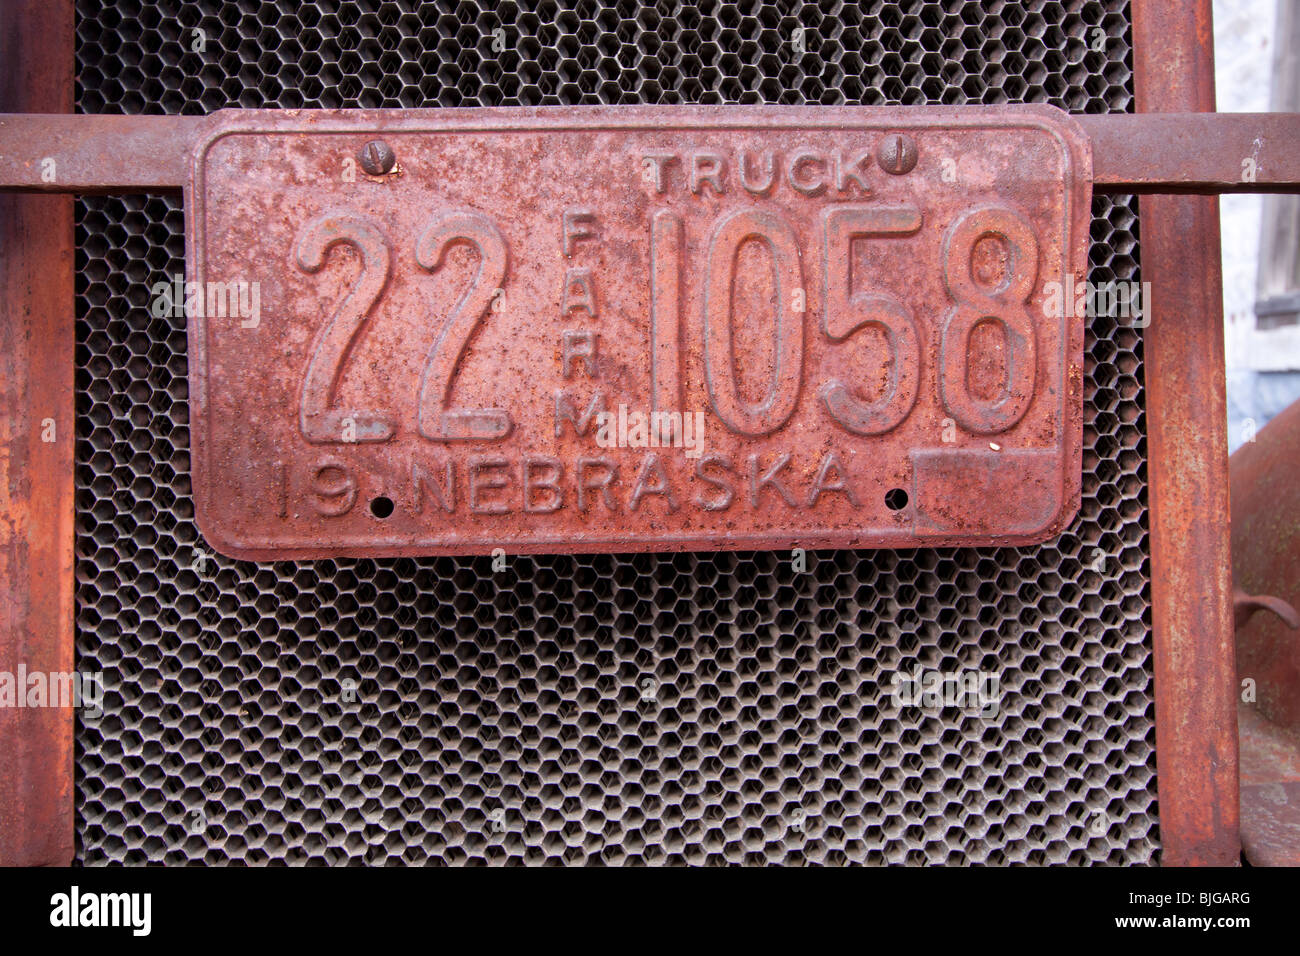 A rusted farm license plate on a rusting out antique car in Nebraska, USA. - Stock Image